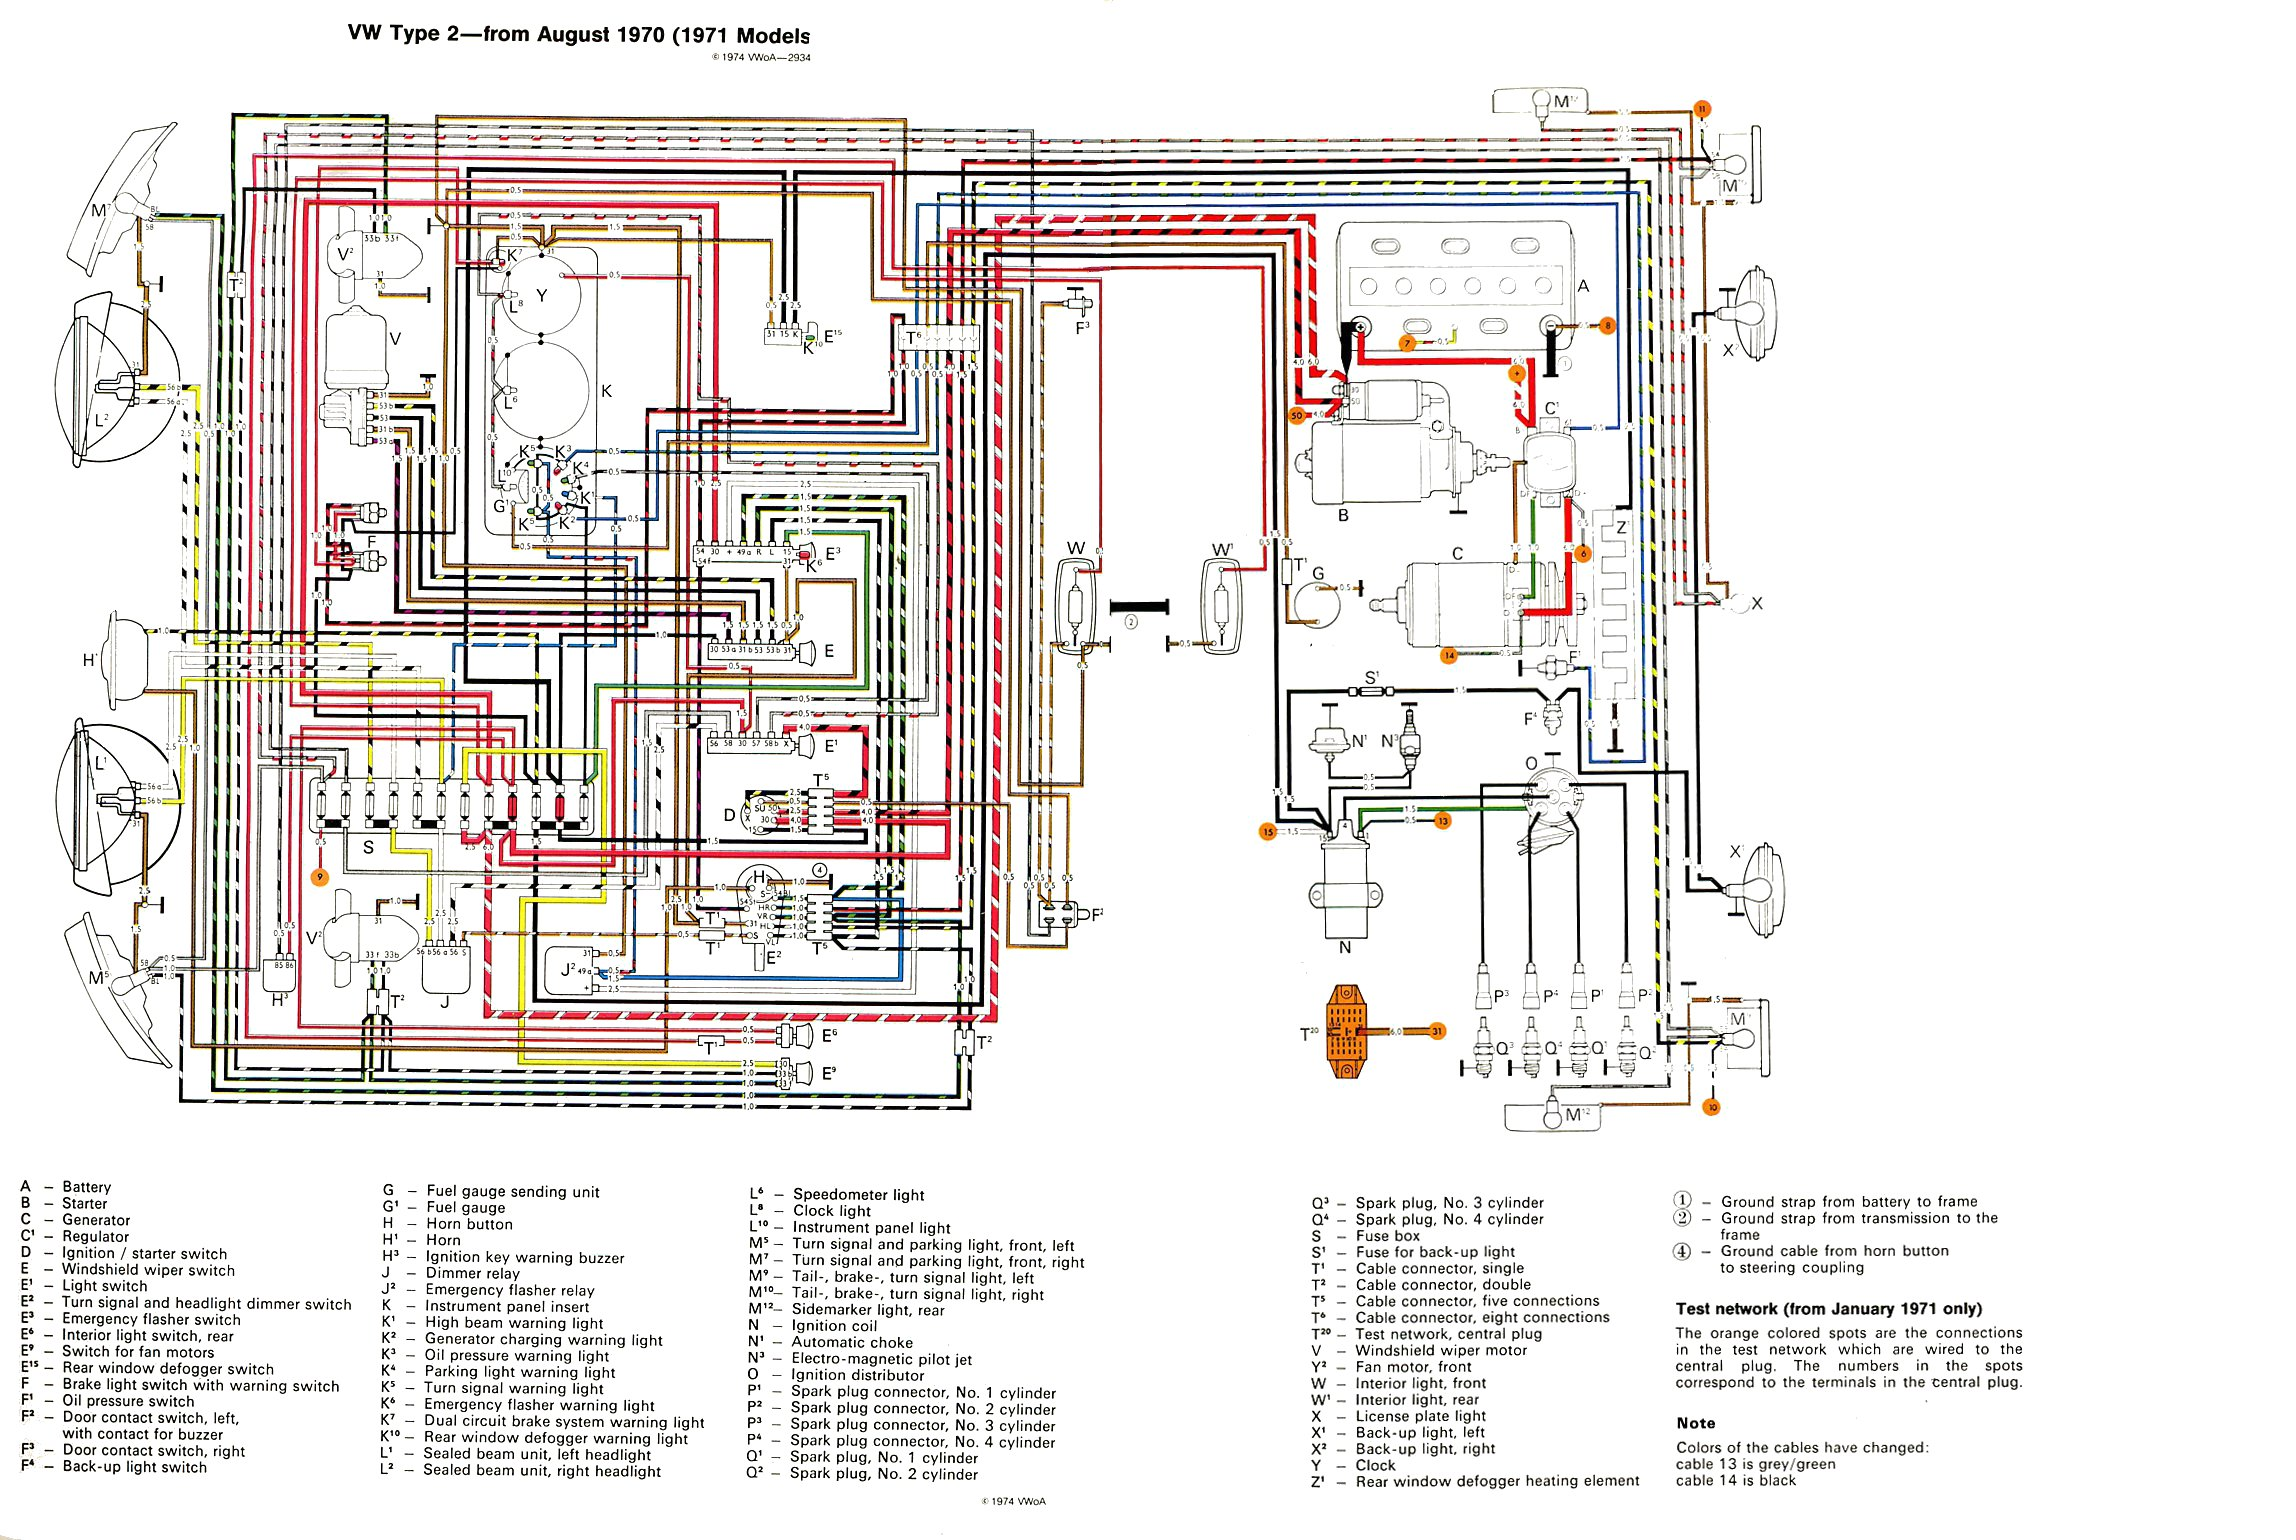 Truck Tail Light Wiring Diagram Besides Dodge Dakota Fuse Box Diagram